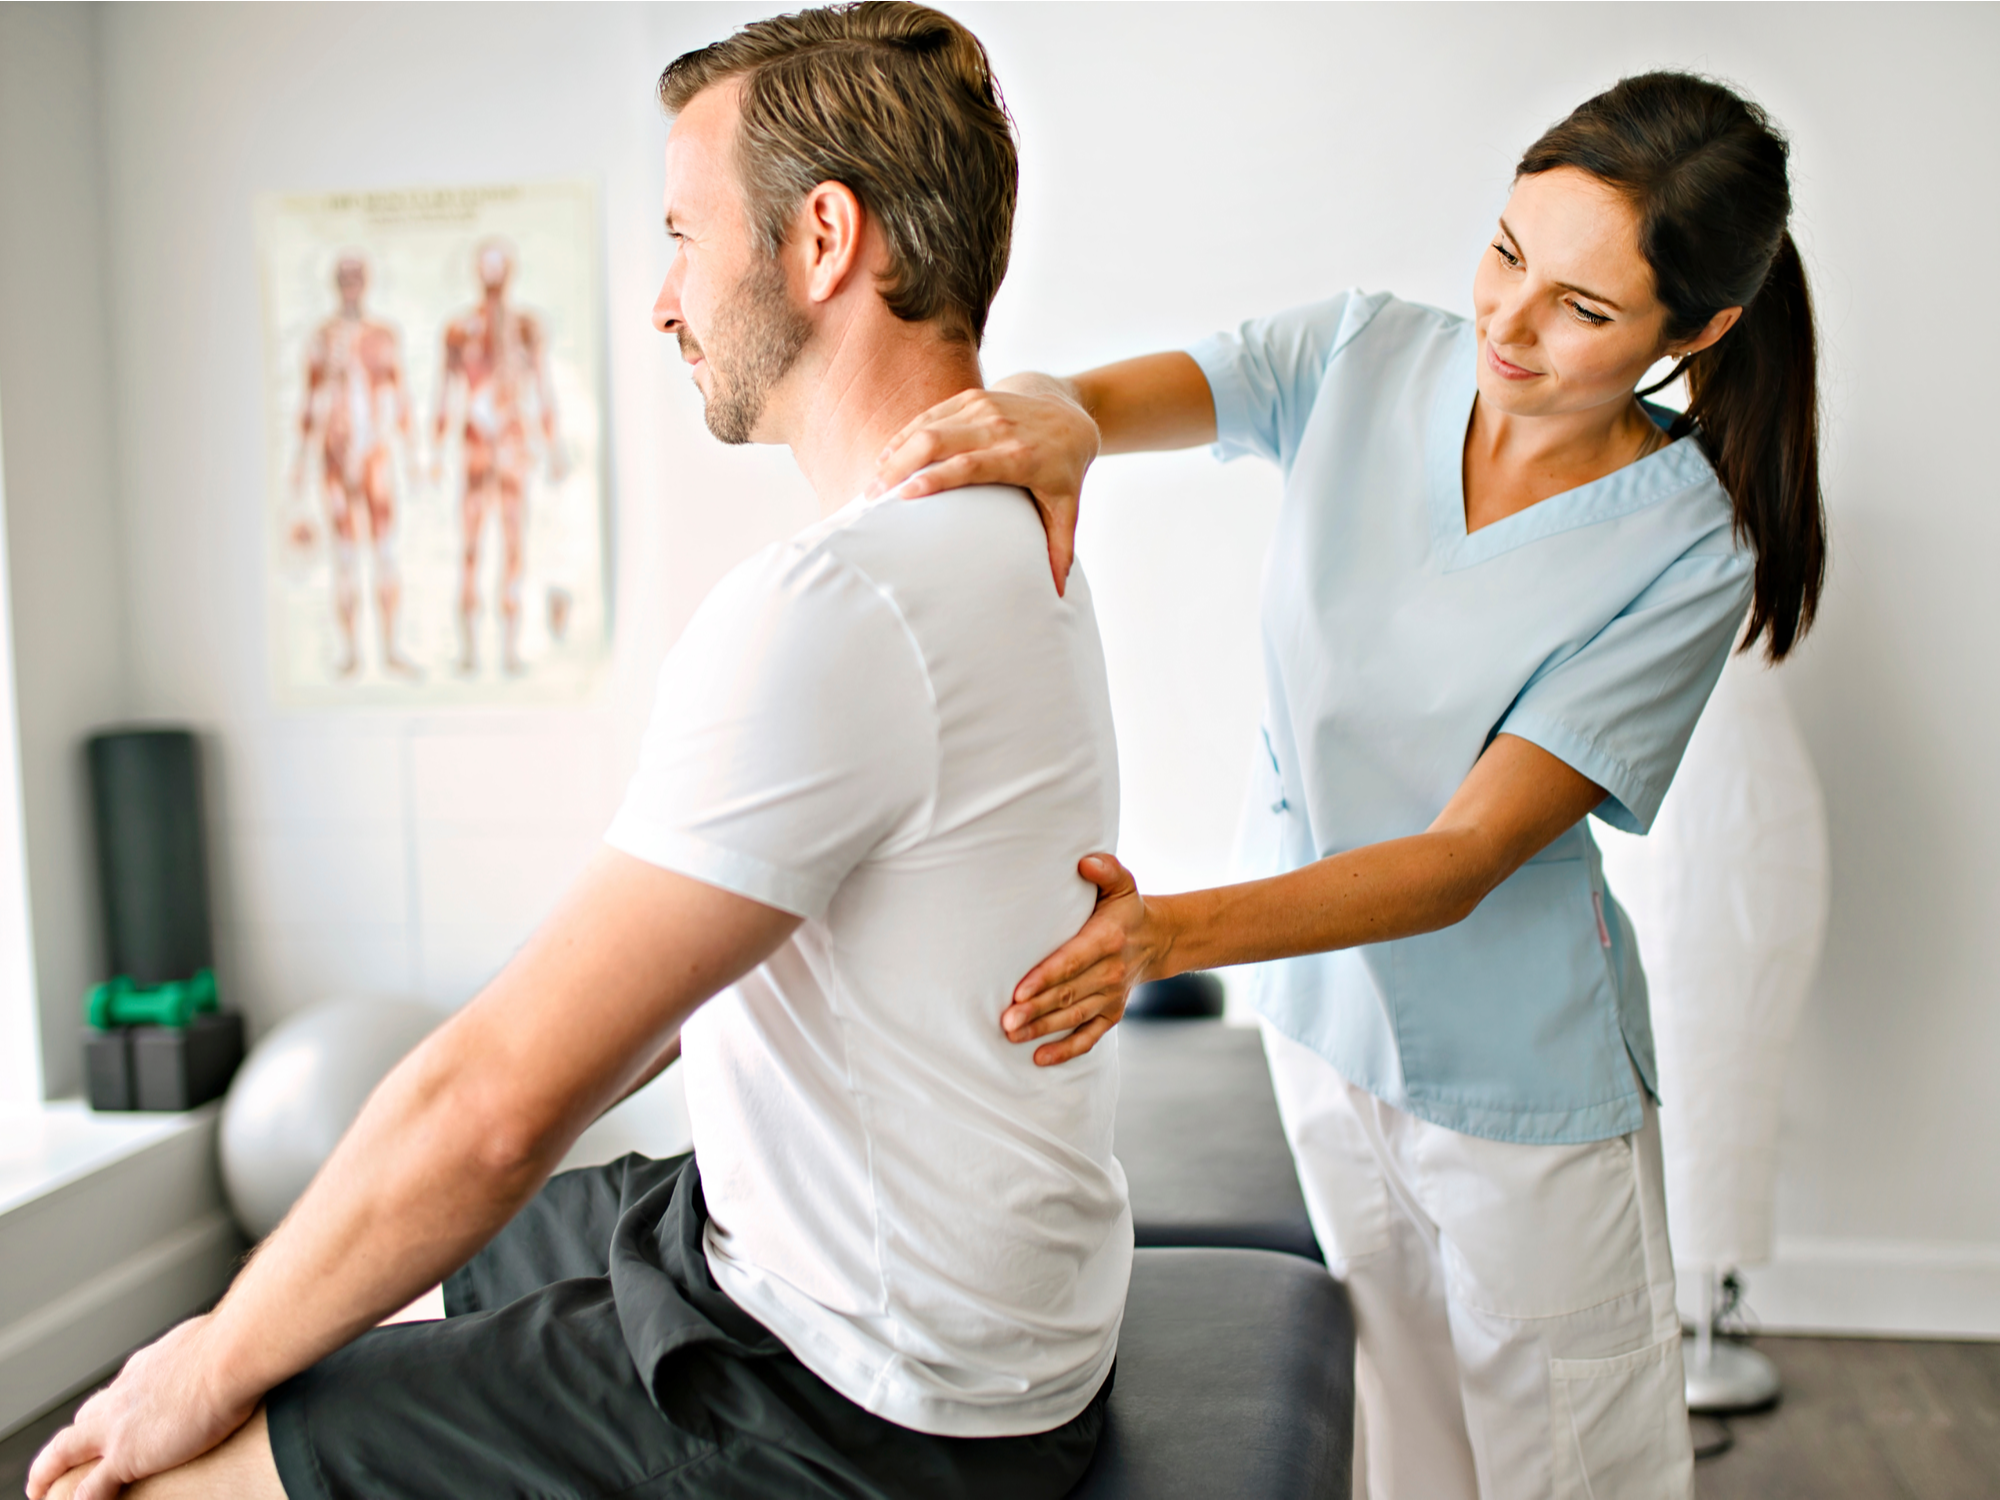 Chiropractors Who Care: What to Look for When Choosing a Chiropractor